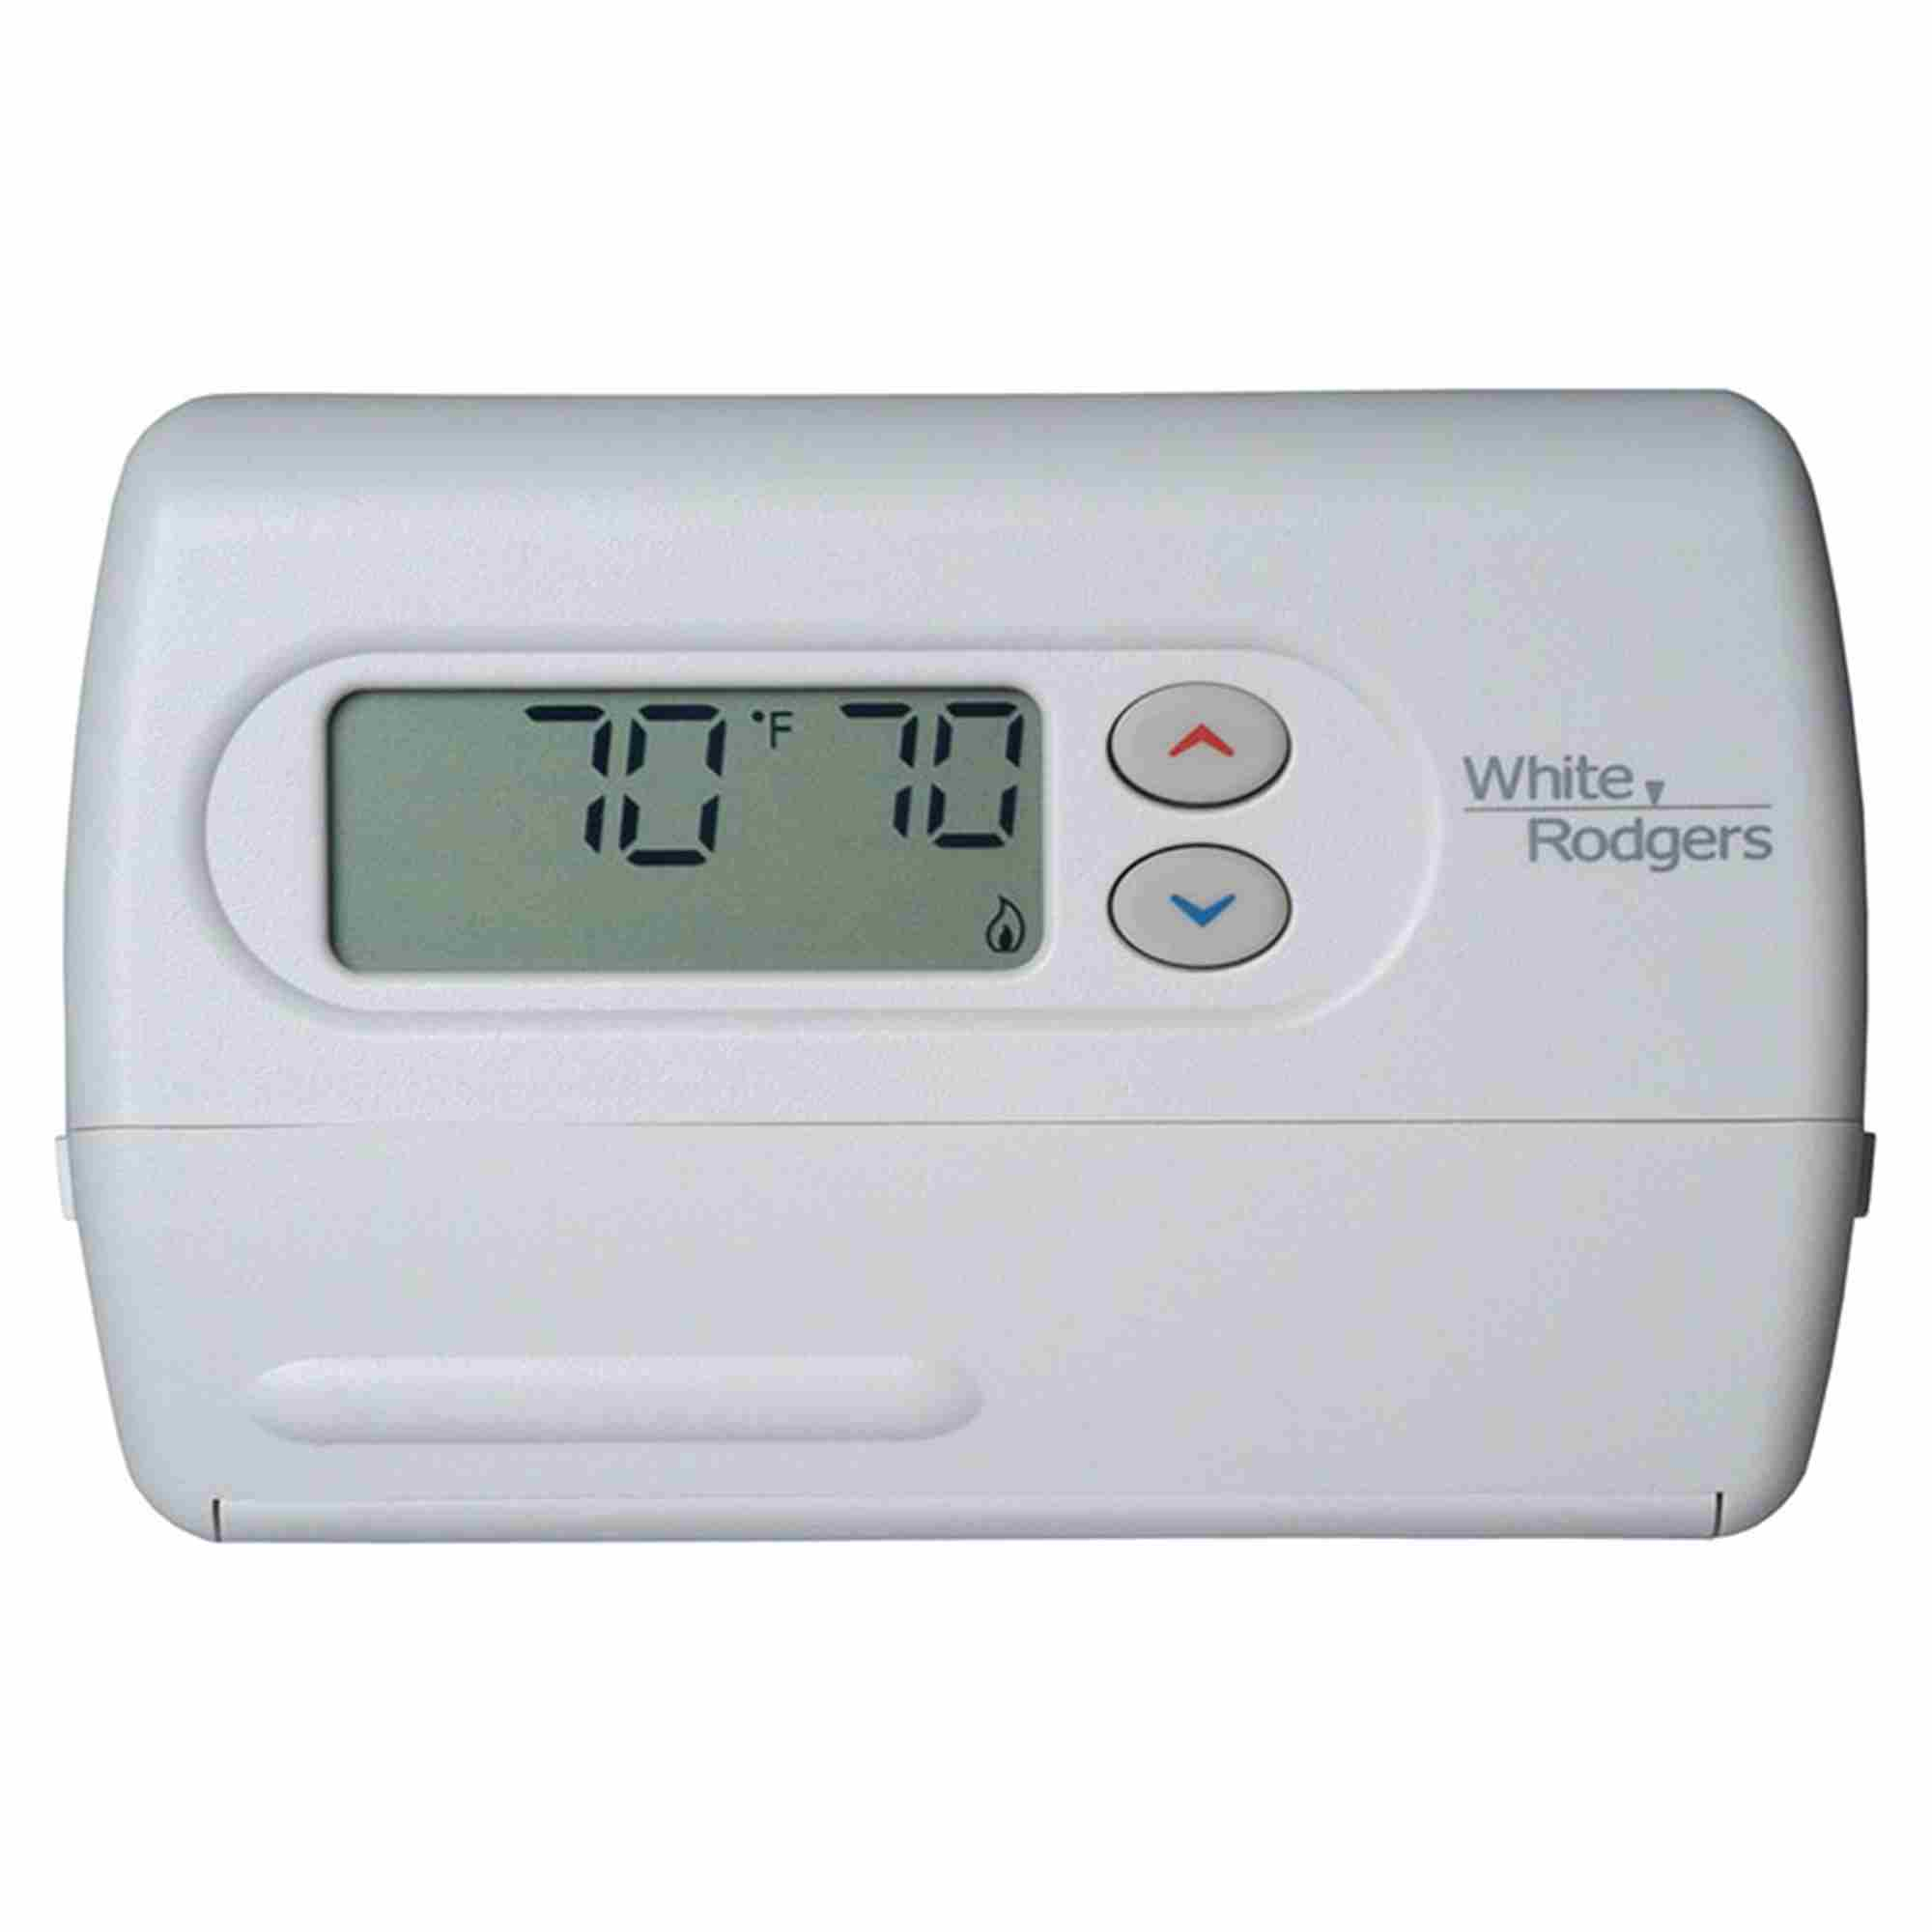 White Rodgers 1F86-241 Non-Programmable Thermostat   eBay